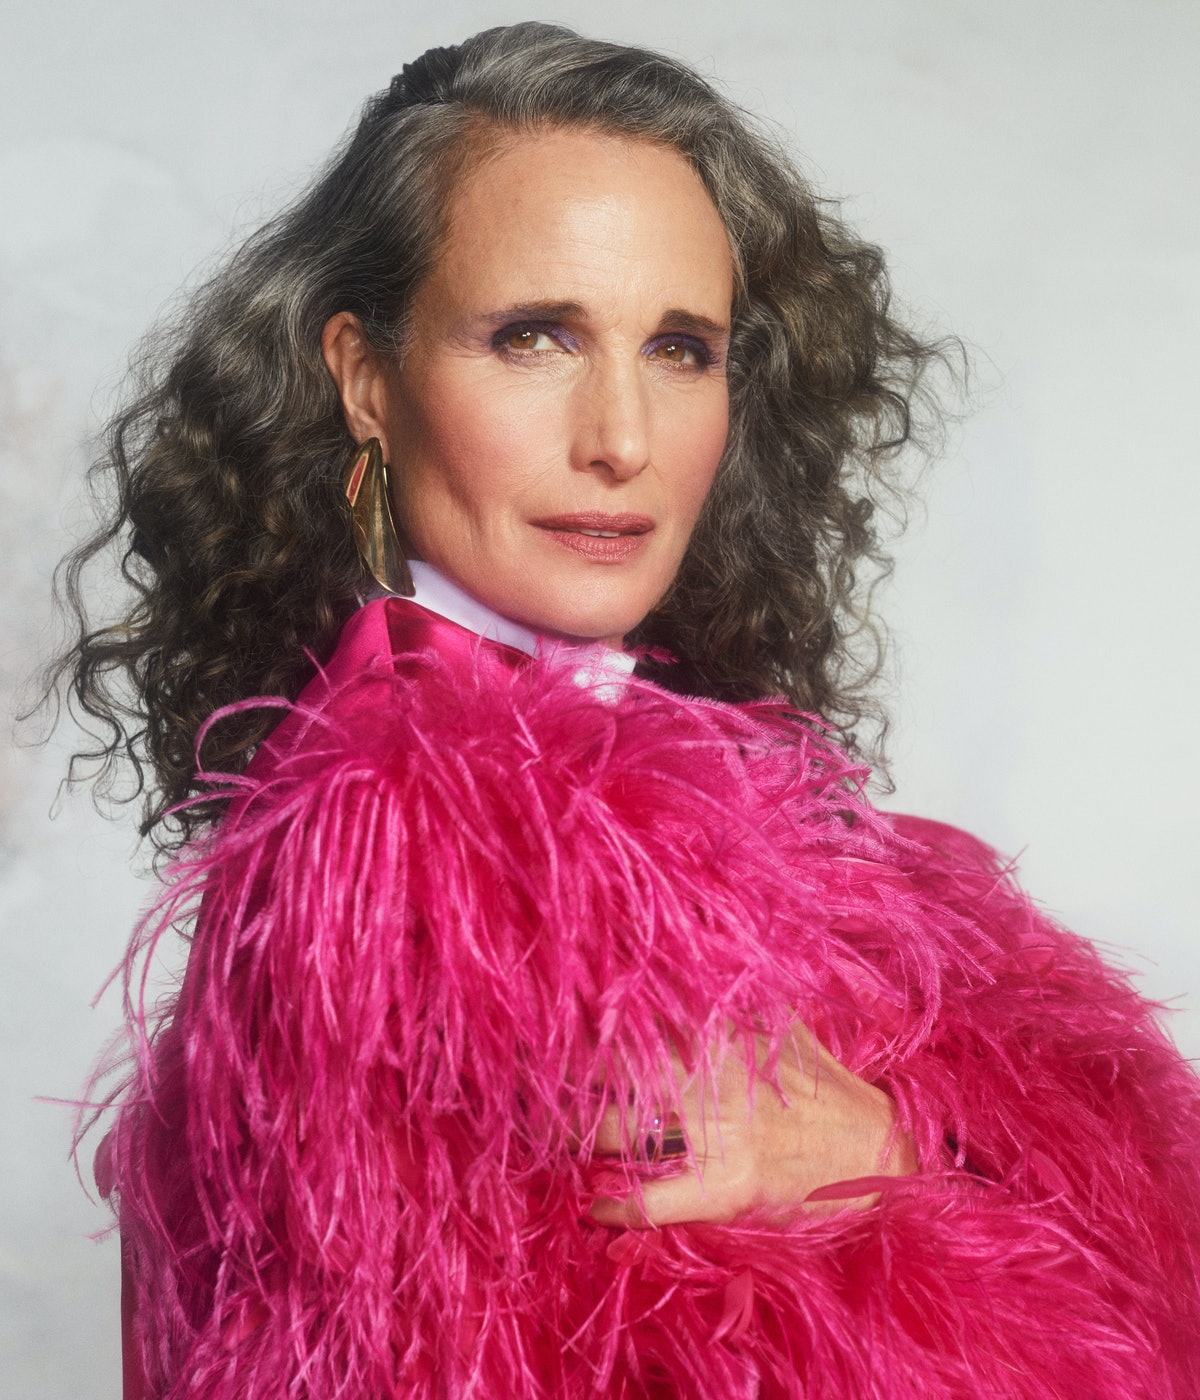 A portrait shot of TZR cover star Andie MacDowell sporting gray hair and a pink feathered Gucci top.